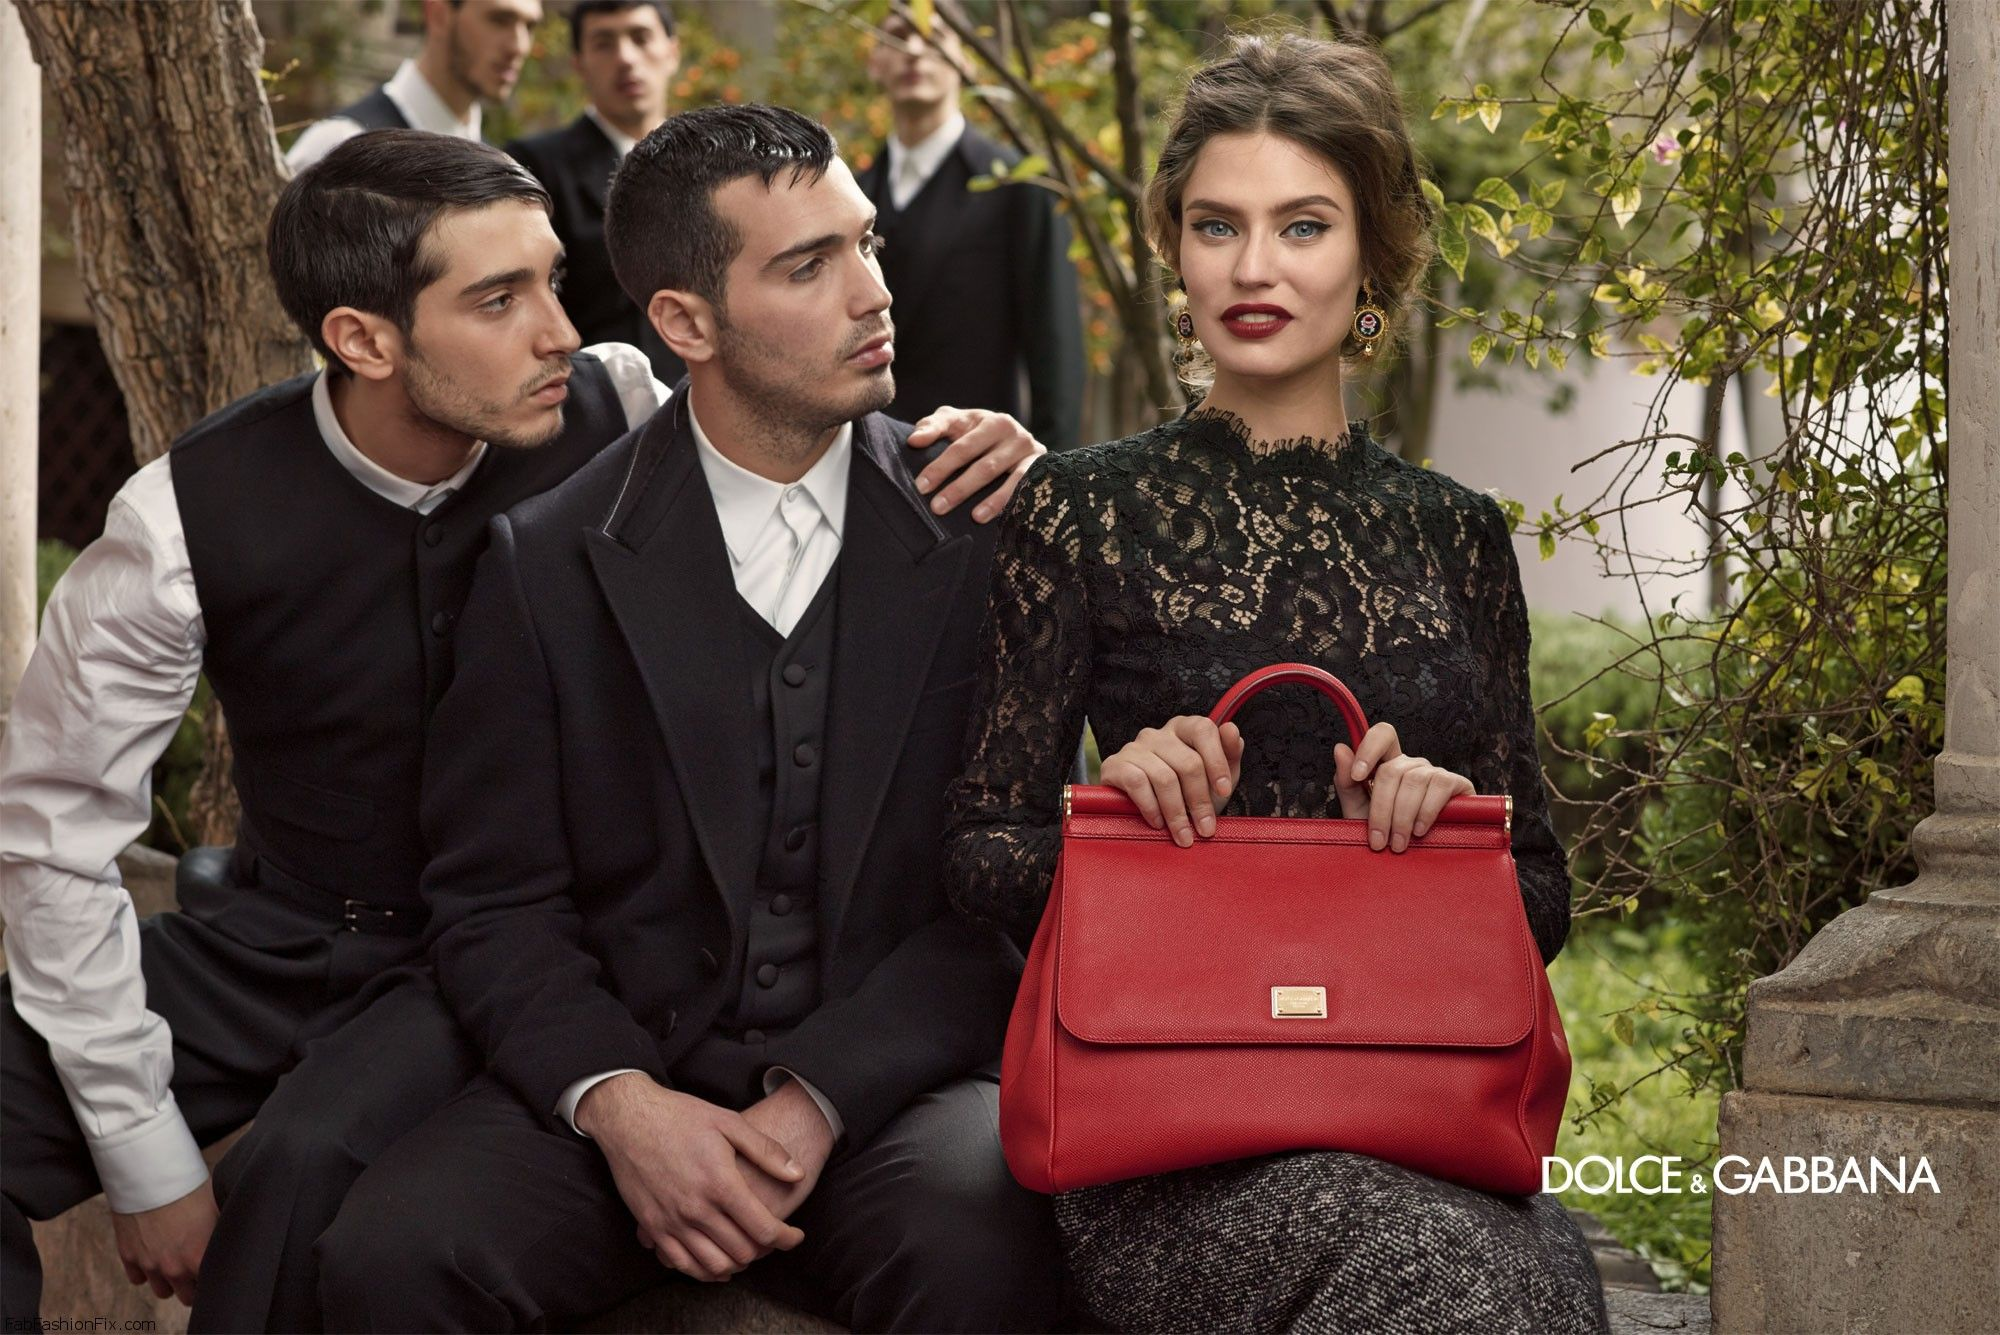 dolce-and-gabbana-fw-2014-women-adv-campaign-16